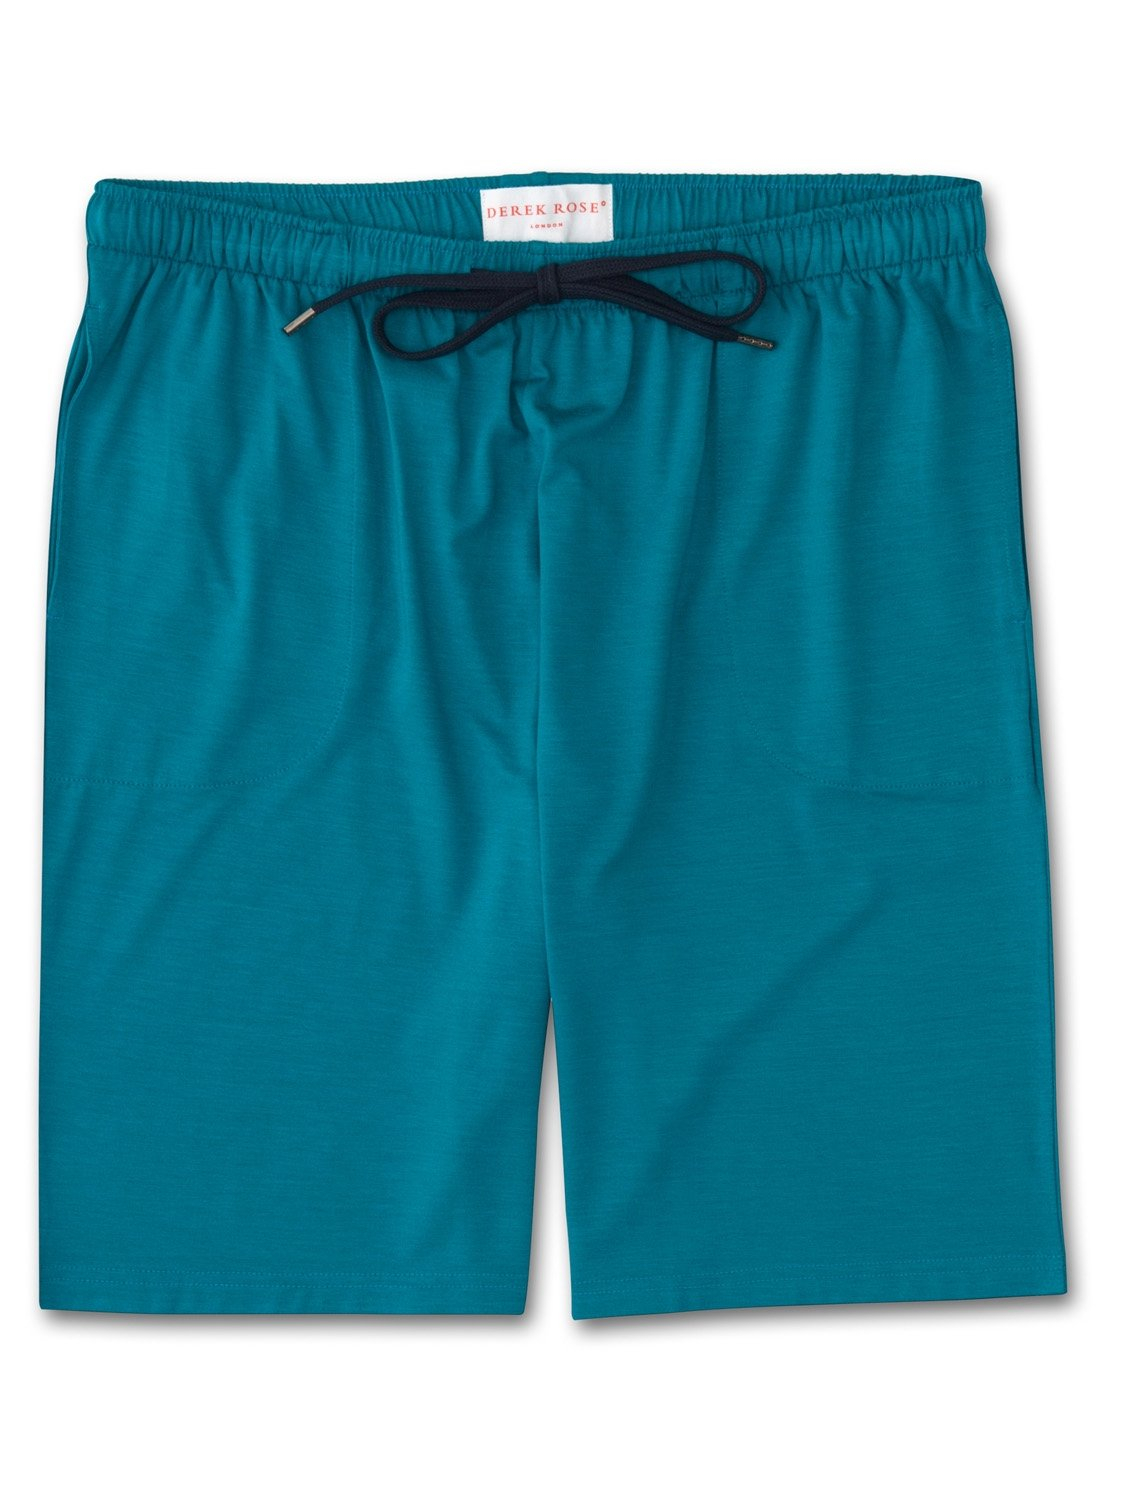 Men's Jersey Shorts Basel 4 Micro Modal Stretch Teal